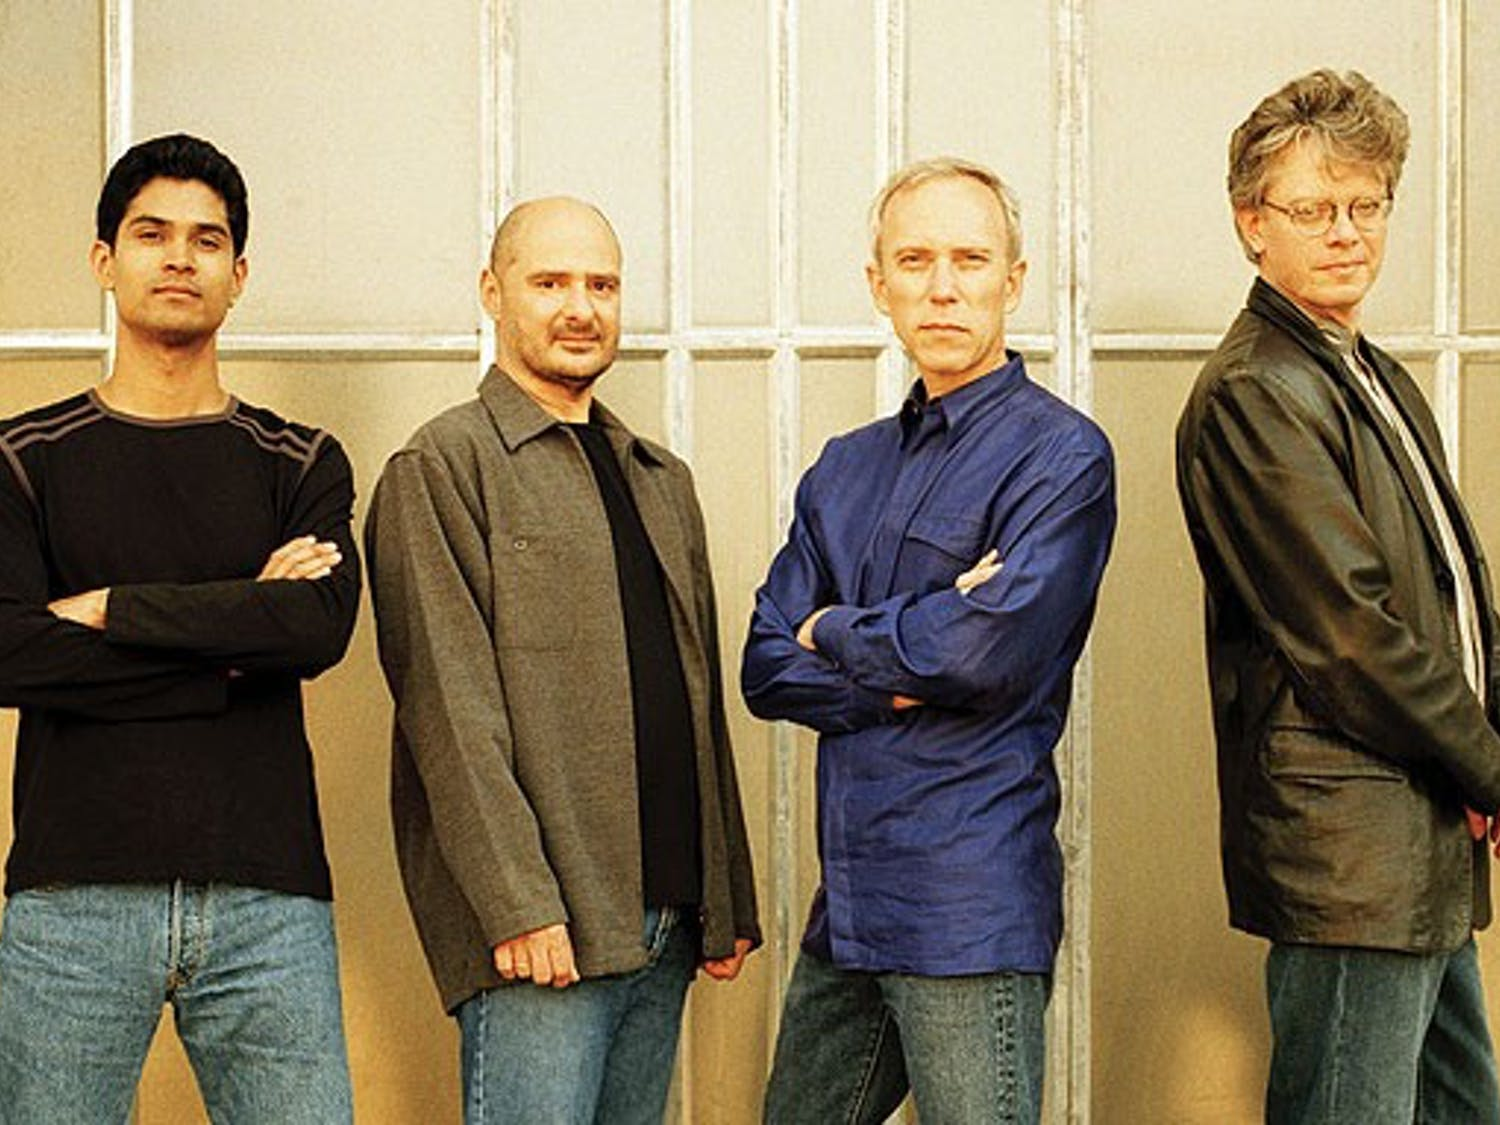 Kronos Quartet will perform the entirety of the work they've done with Steve Reich, including a new quartet, WTC 9/11. The new piece uses pre-recorded voices from both the day of the attacks and interviews Reich did in 2010.